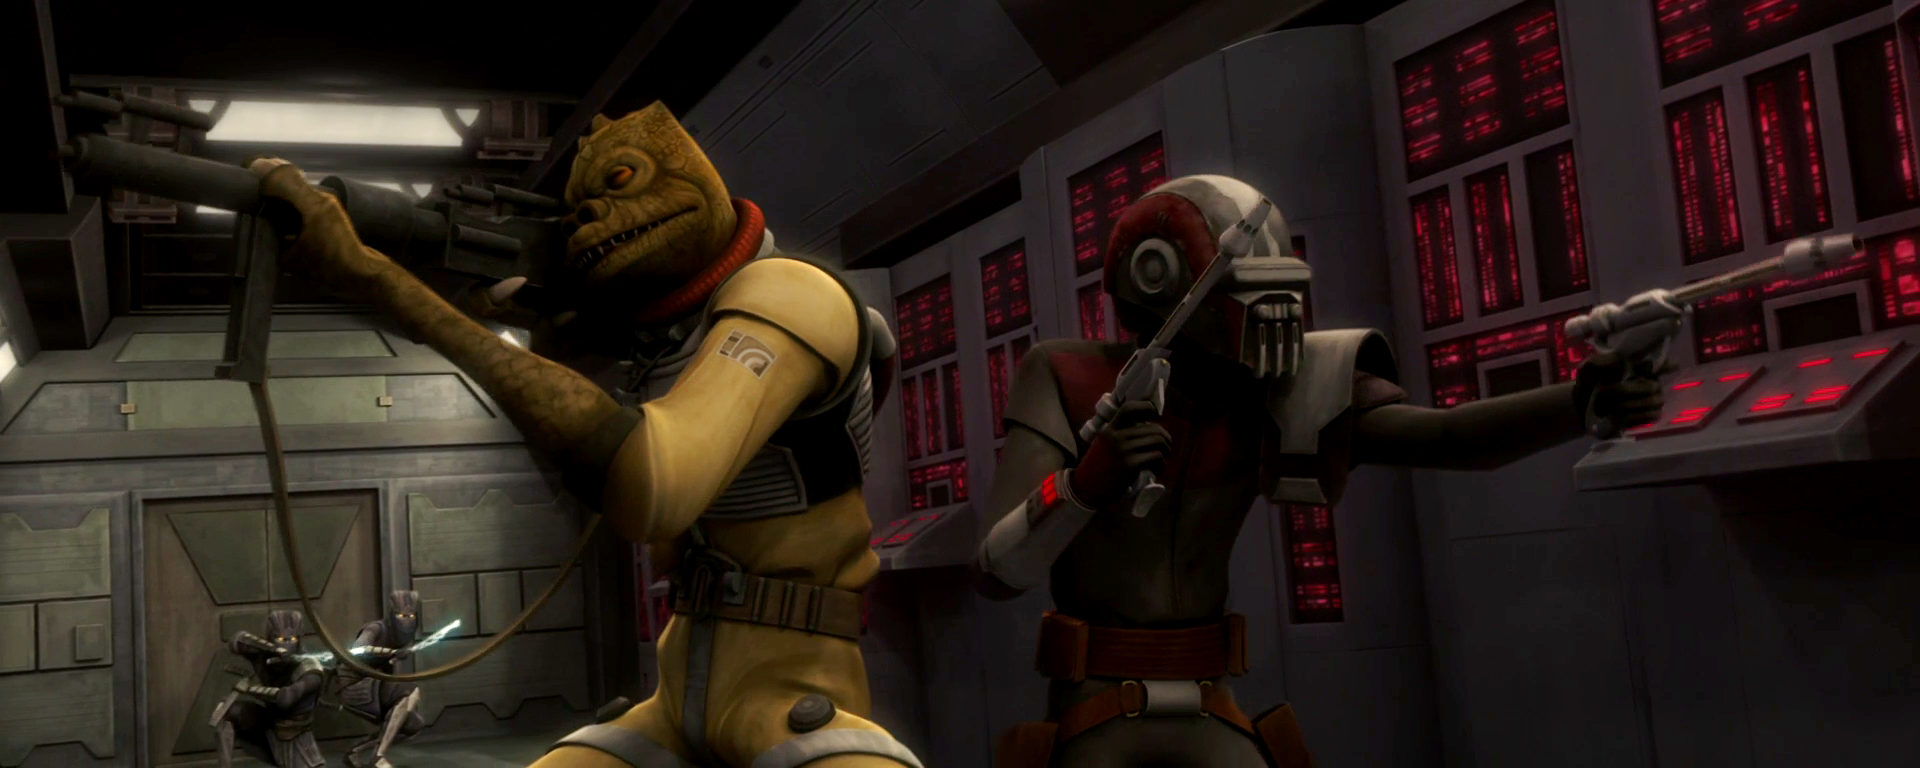 Battlefront Producer Paul Keslin Comments On Bossk Death